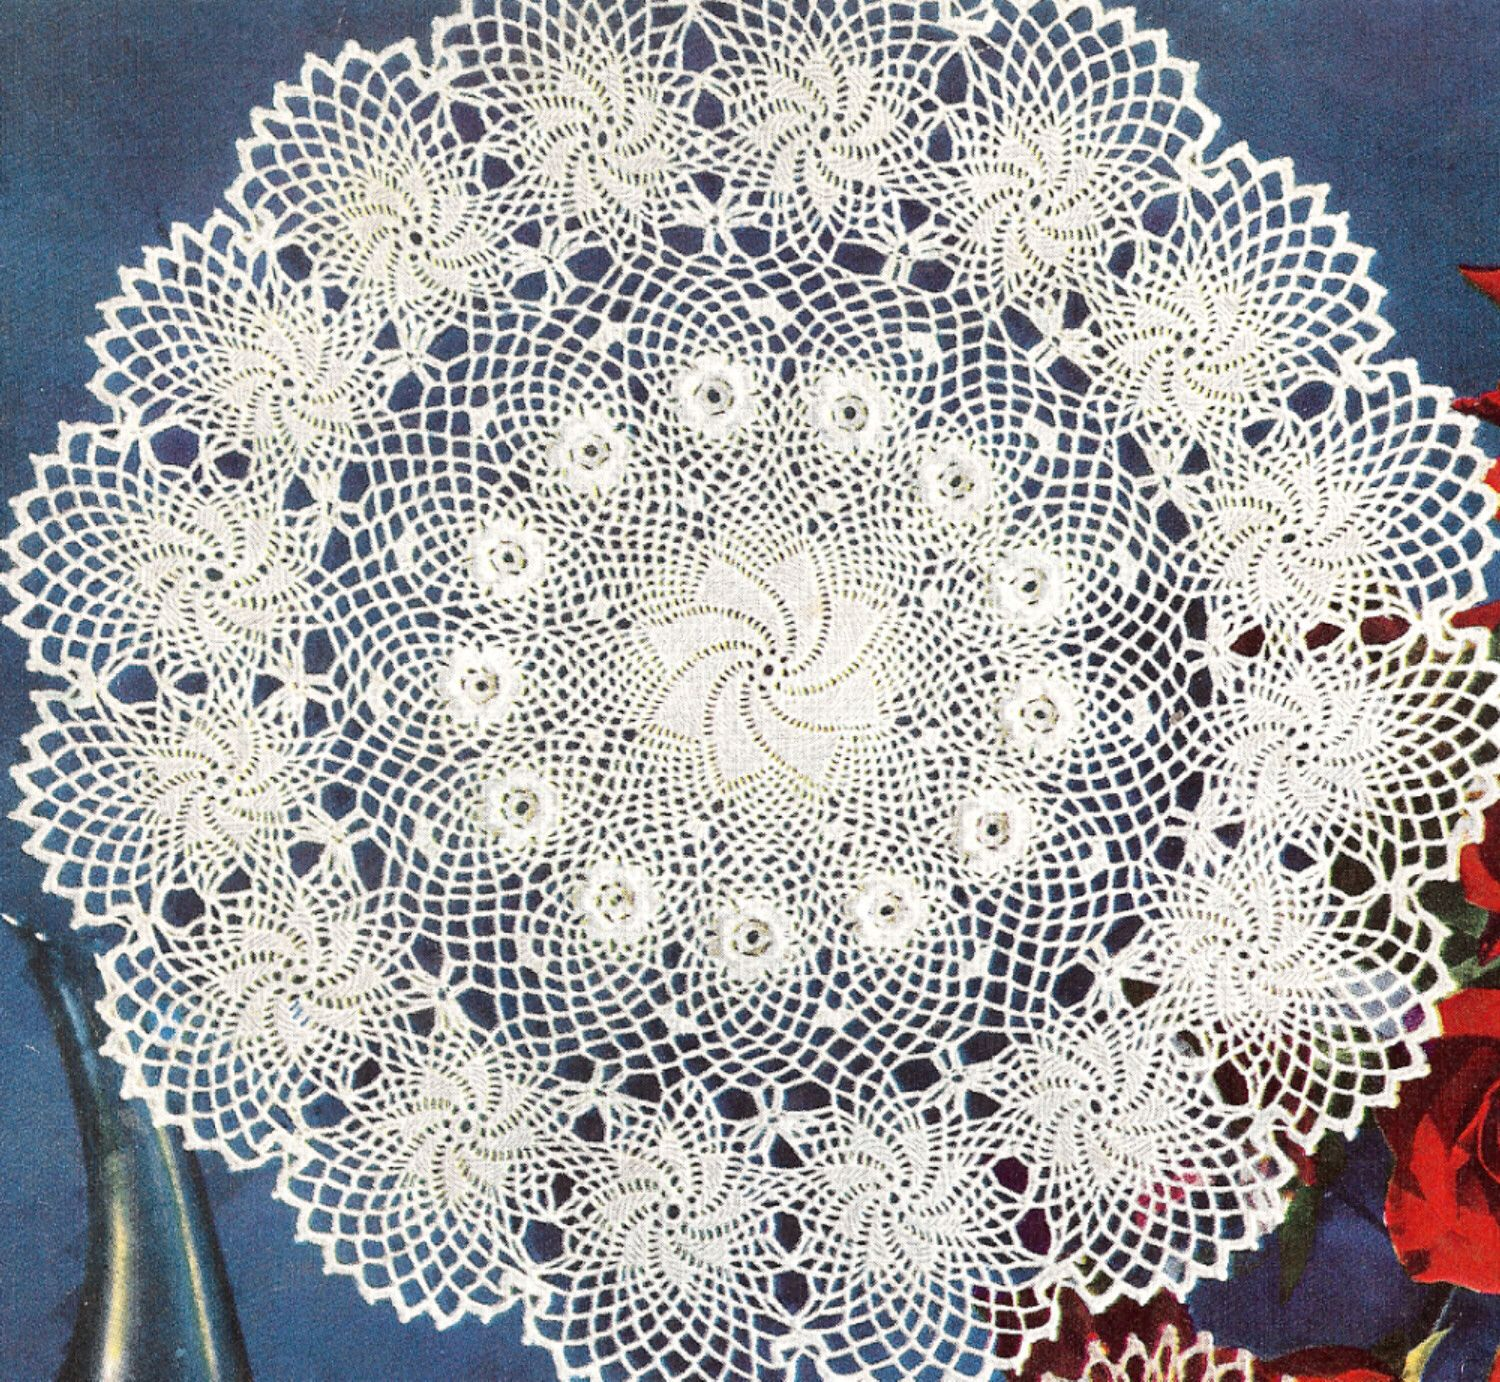 Vintage Crochet Pattern To Make Doily Erin Irish Rose Flower Tm Diagram Ideas And Tips Juxtapost I Made This Onereceived The From My Mother In Law Is A Complicated